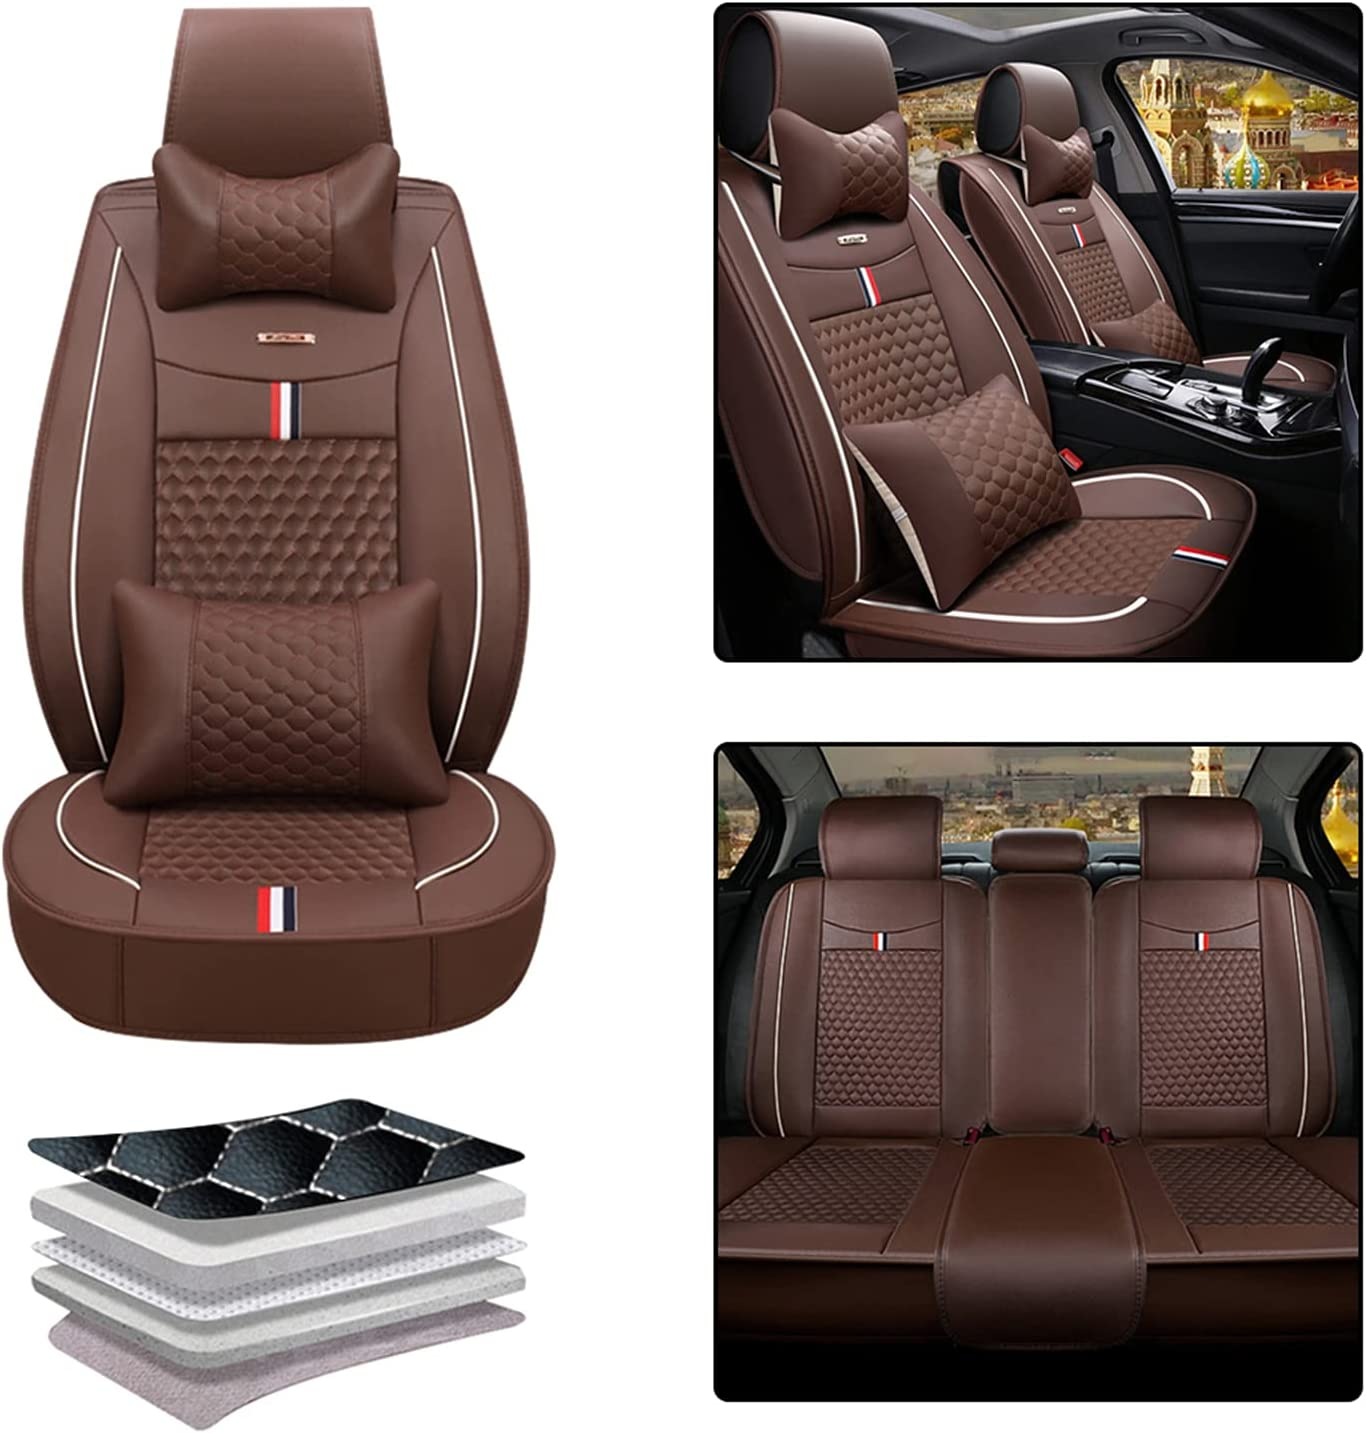 Car Seat Cover for Chevy Chevrolet C5 Brand new Rear Front Spring new work Corvette C7